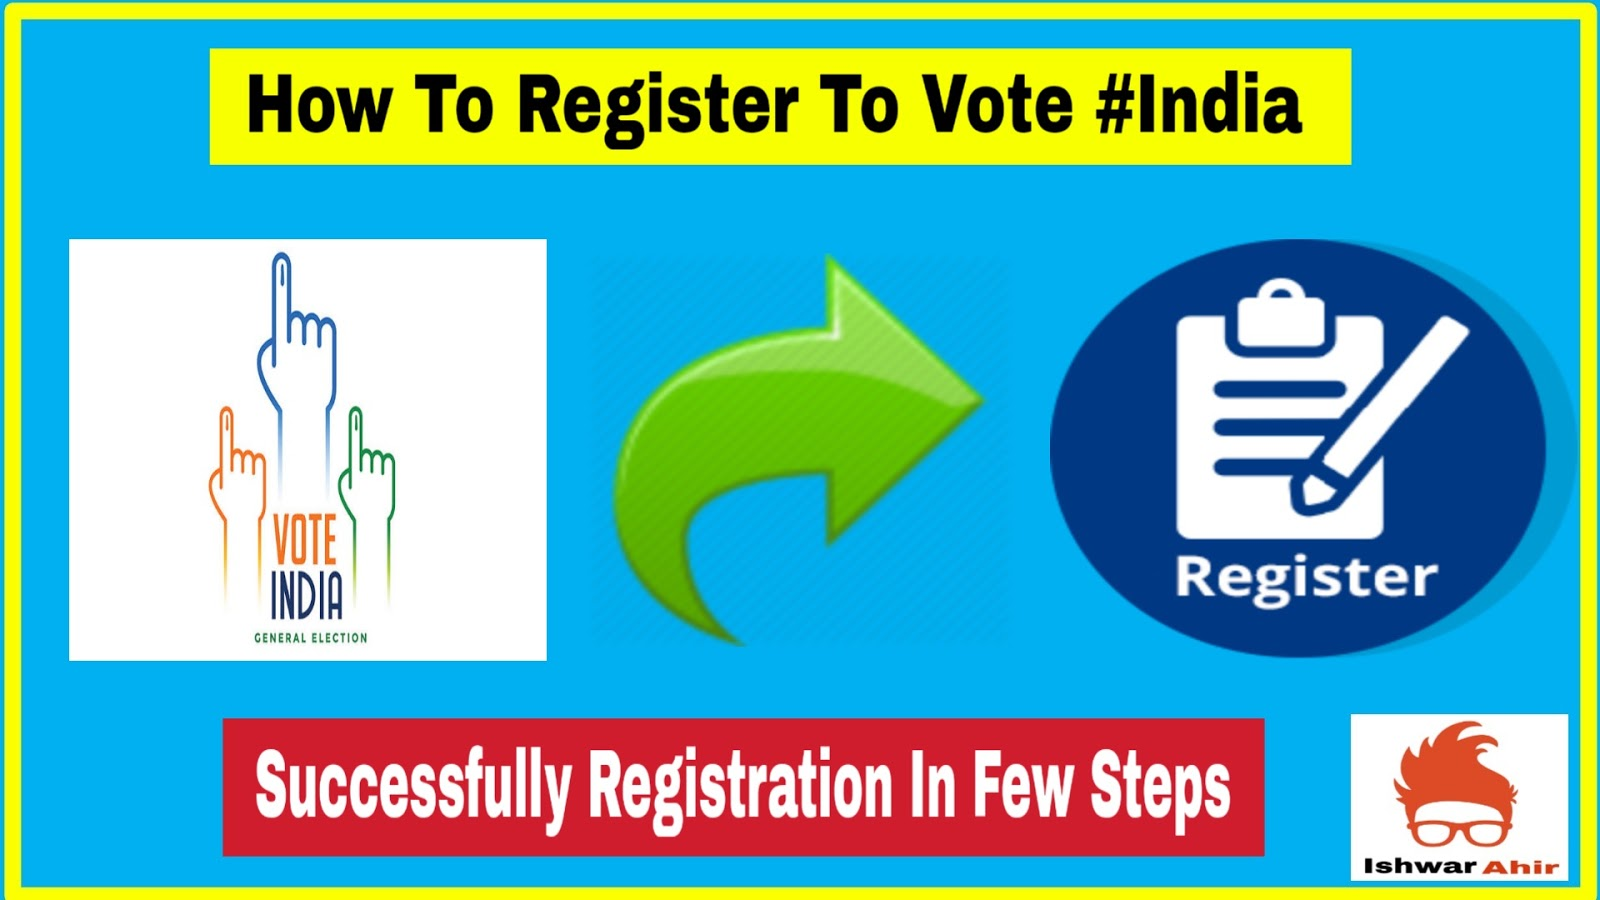 How to Register to Vote #India